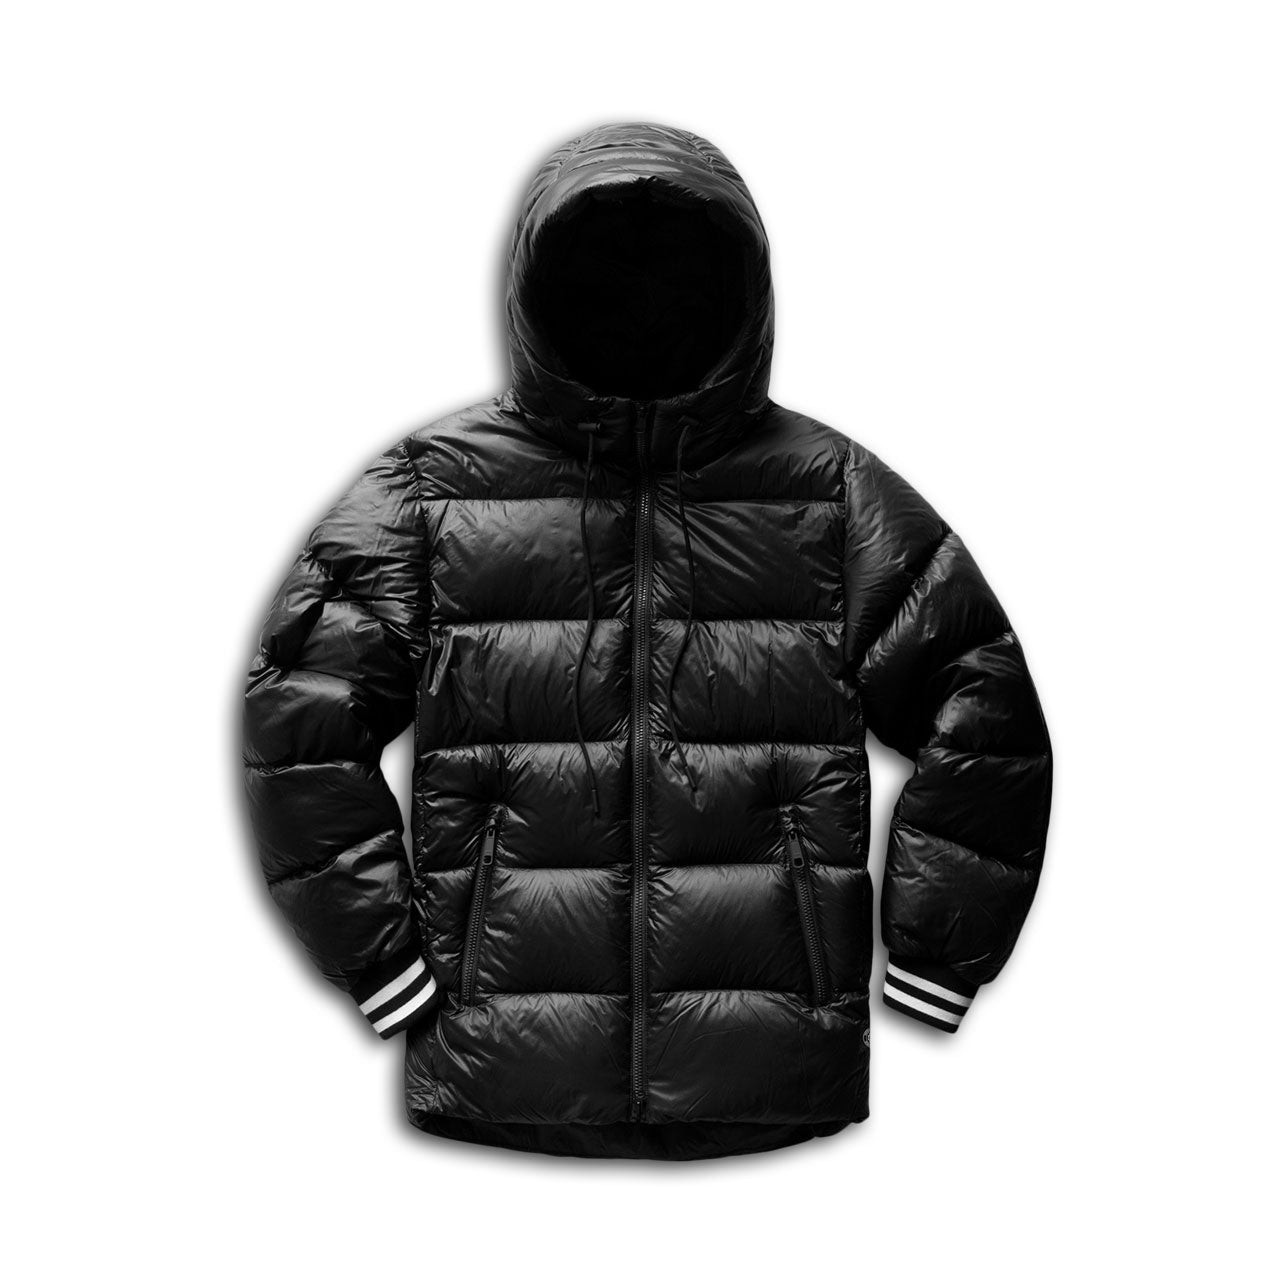 Reigning Champ Goose Down Hooded Jacket